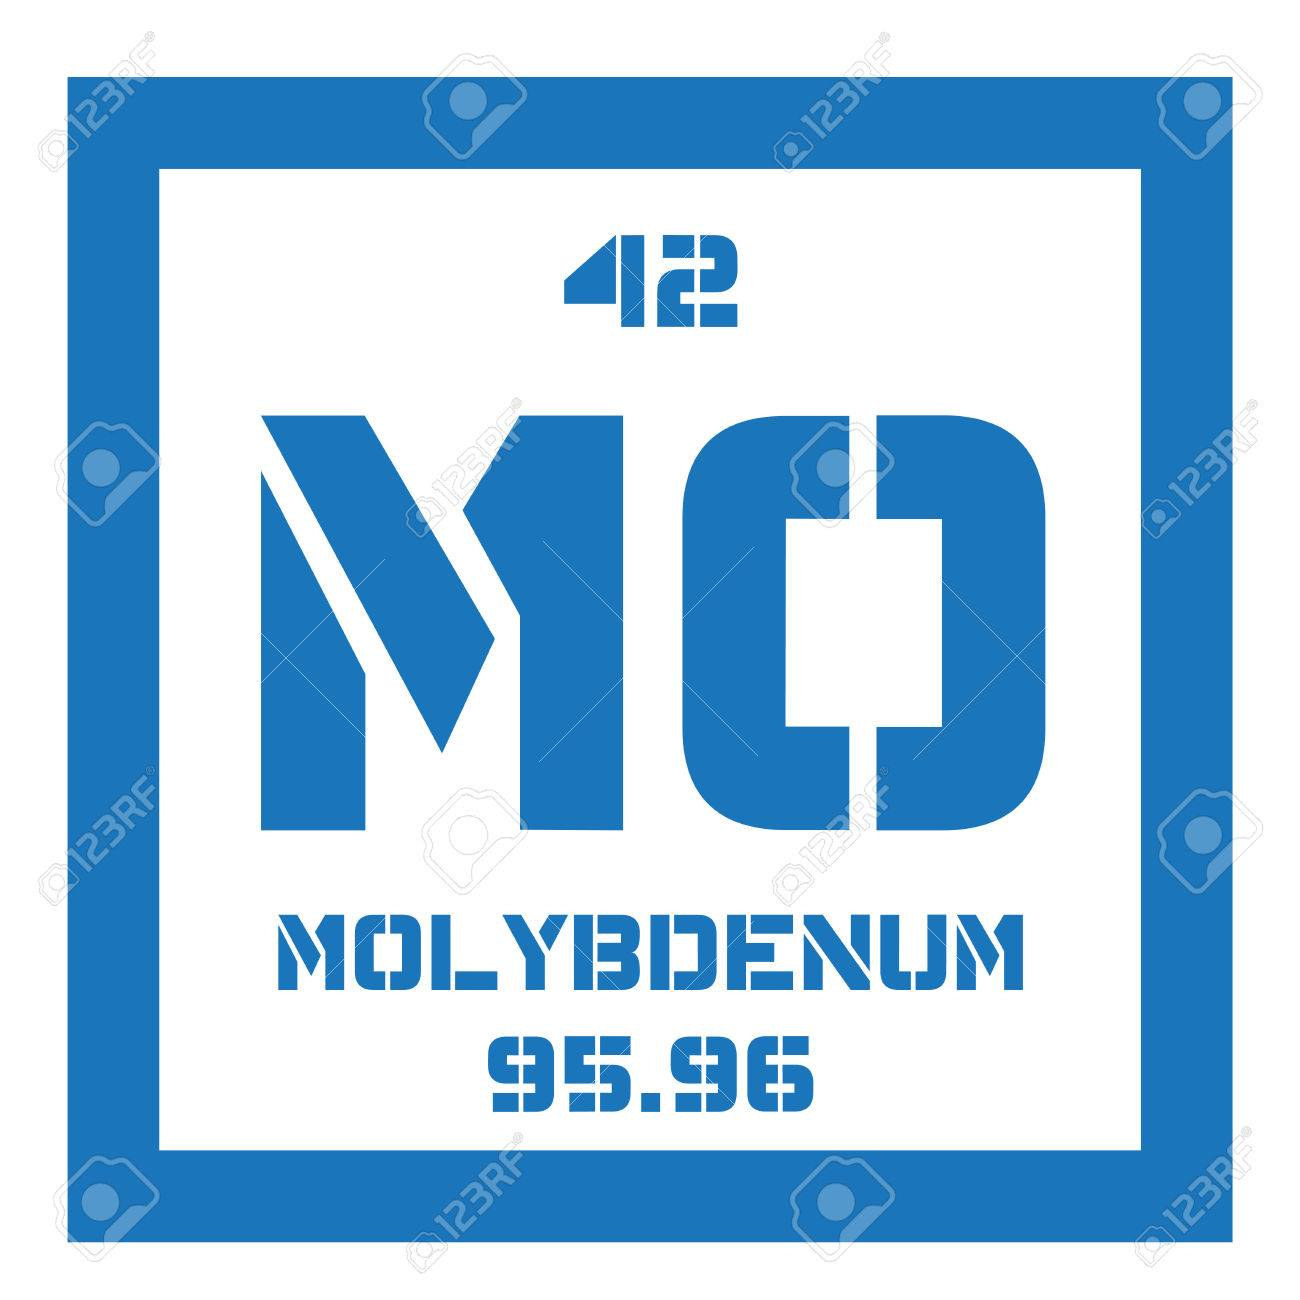 Molybdenum chemical element has sixth highest melting point chemical element of periodic table molybdenum chemical element has sixth highest melting point of all elements colored icon urtaz Image collections